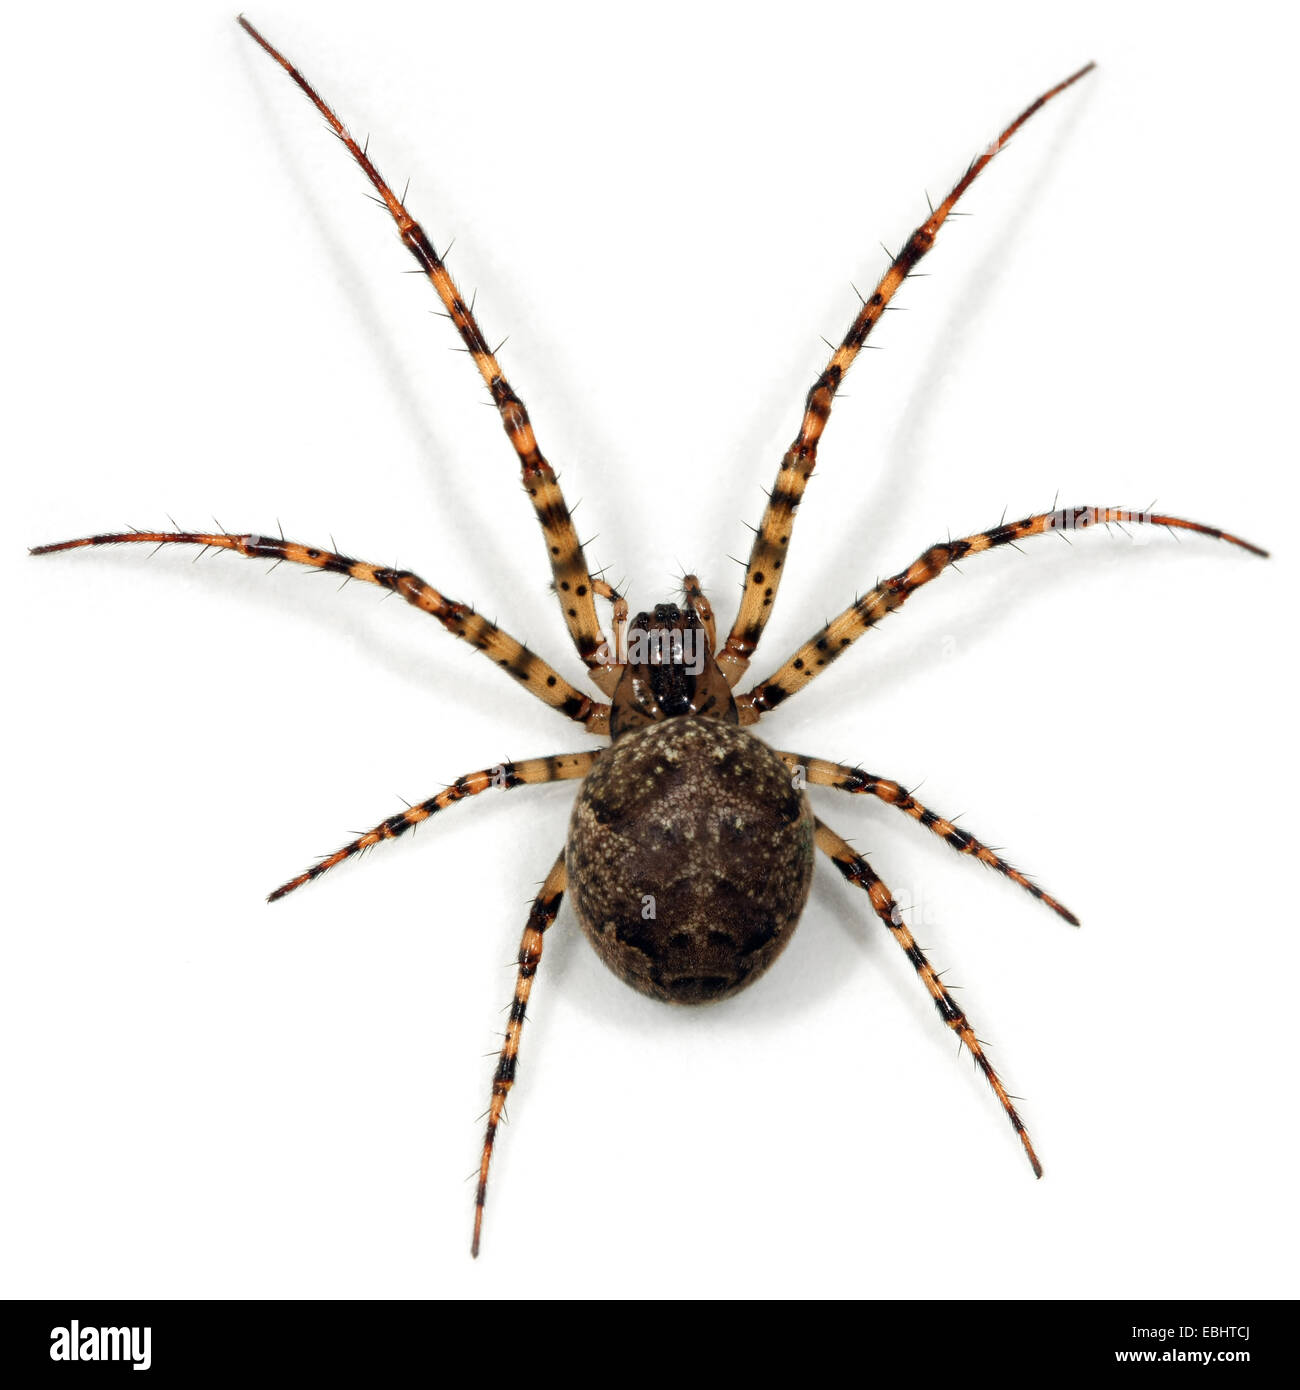 A female longjawed orbweaver (Metellina merianae) on a white background. Longjawed orbweavers are part of the family - Stock Image